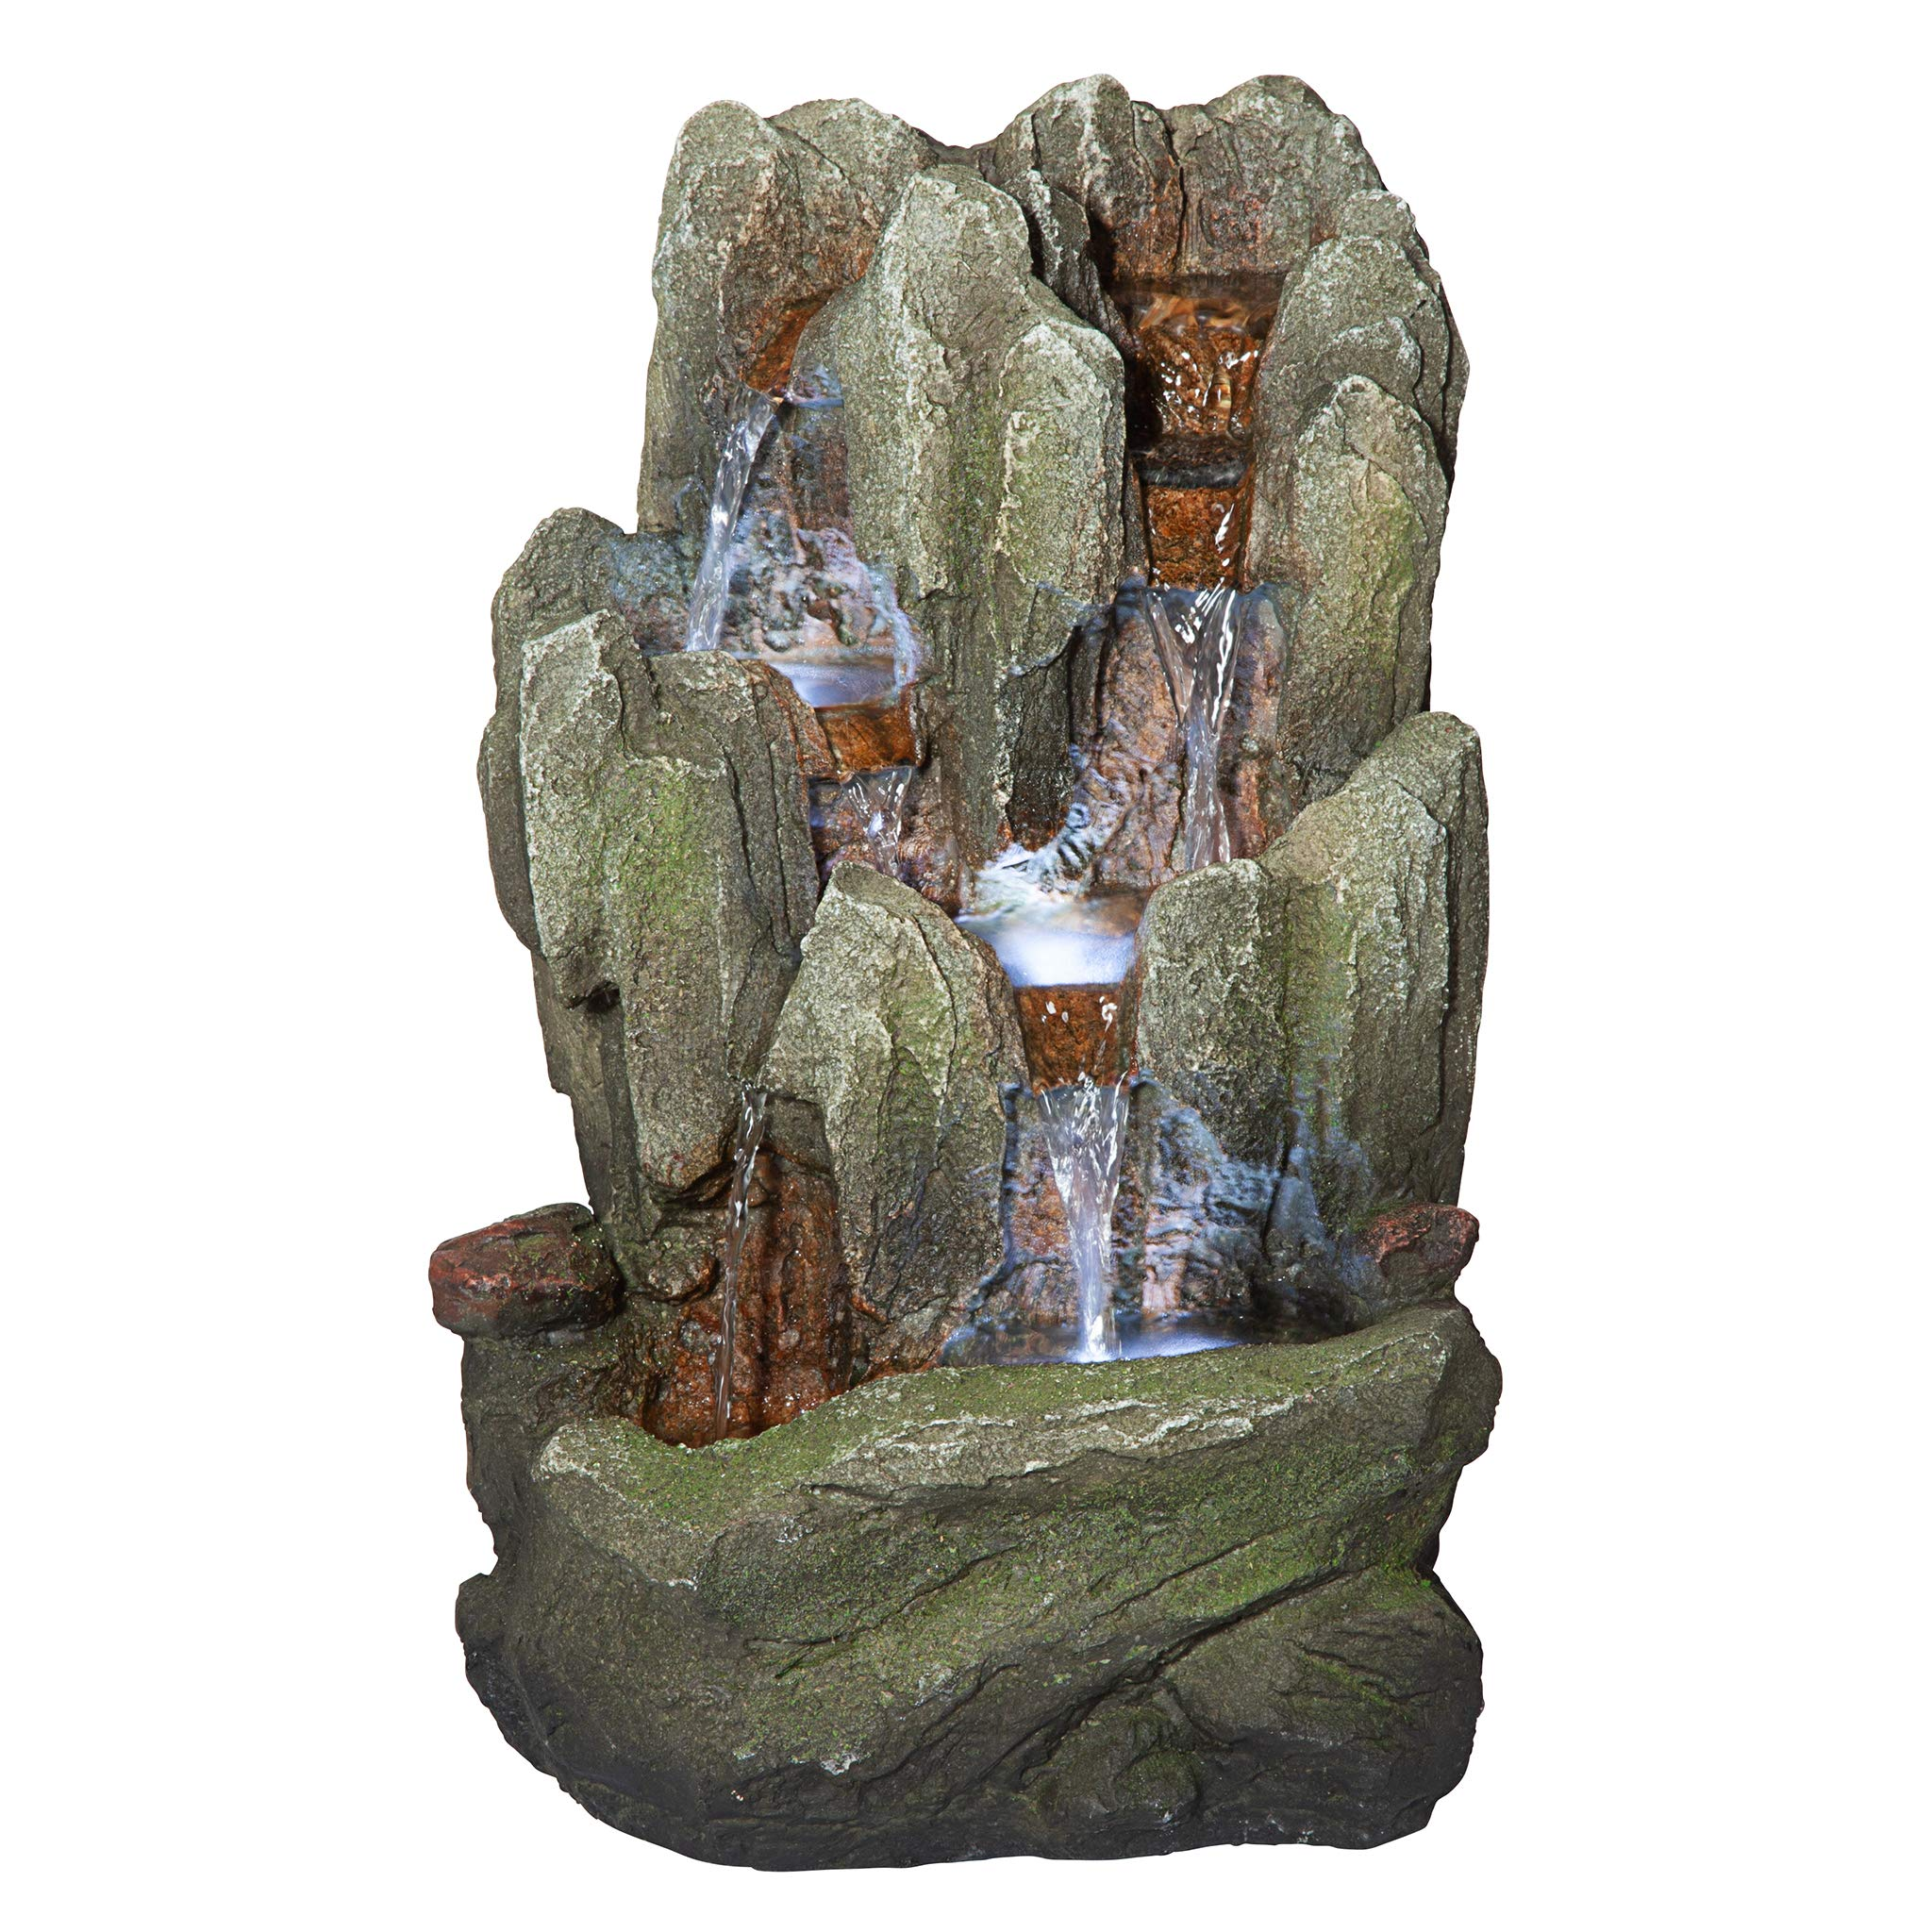 Design Toscano QN170016 Lost Falls Cascading Waterfall Illuminated Tabletop Fountain, 14 Inch, Faux Stone